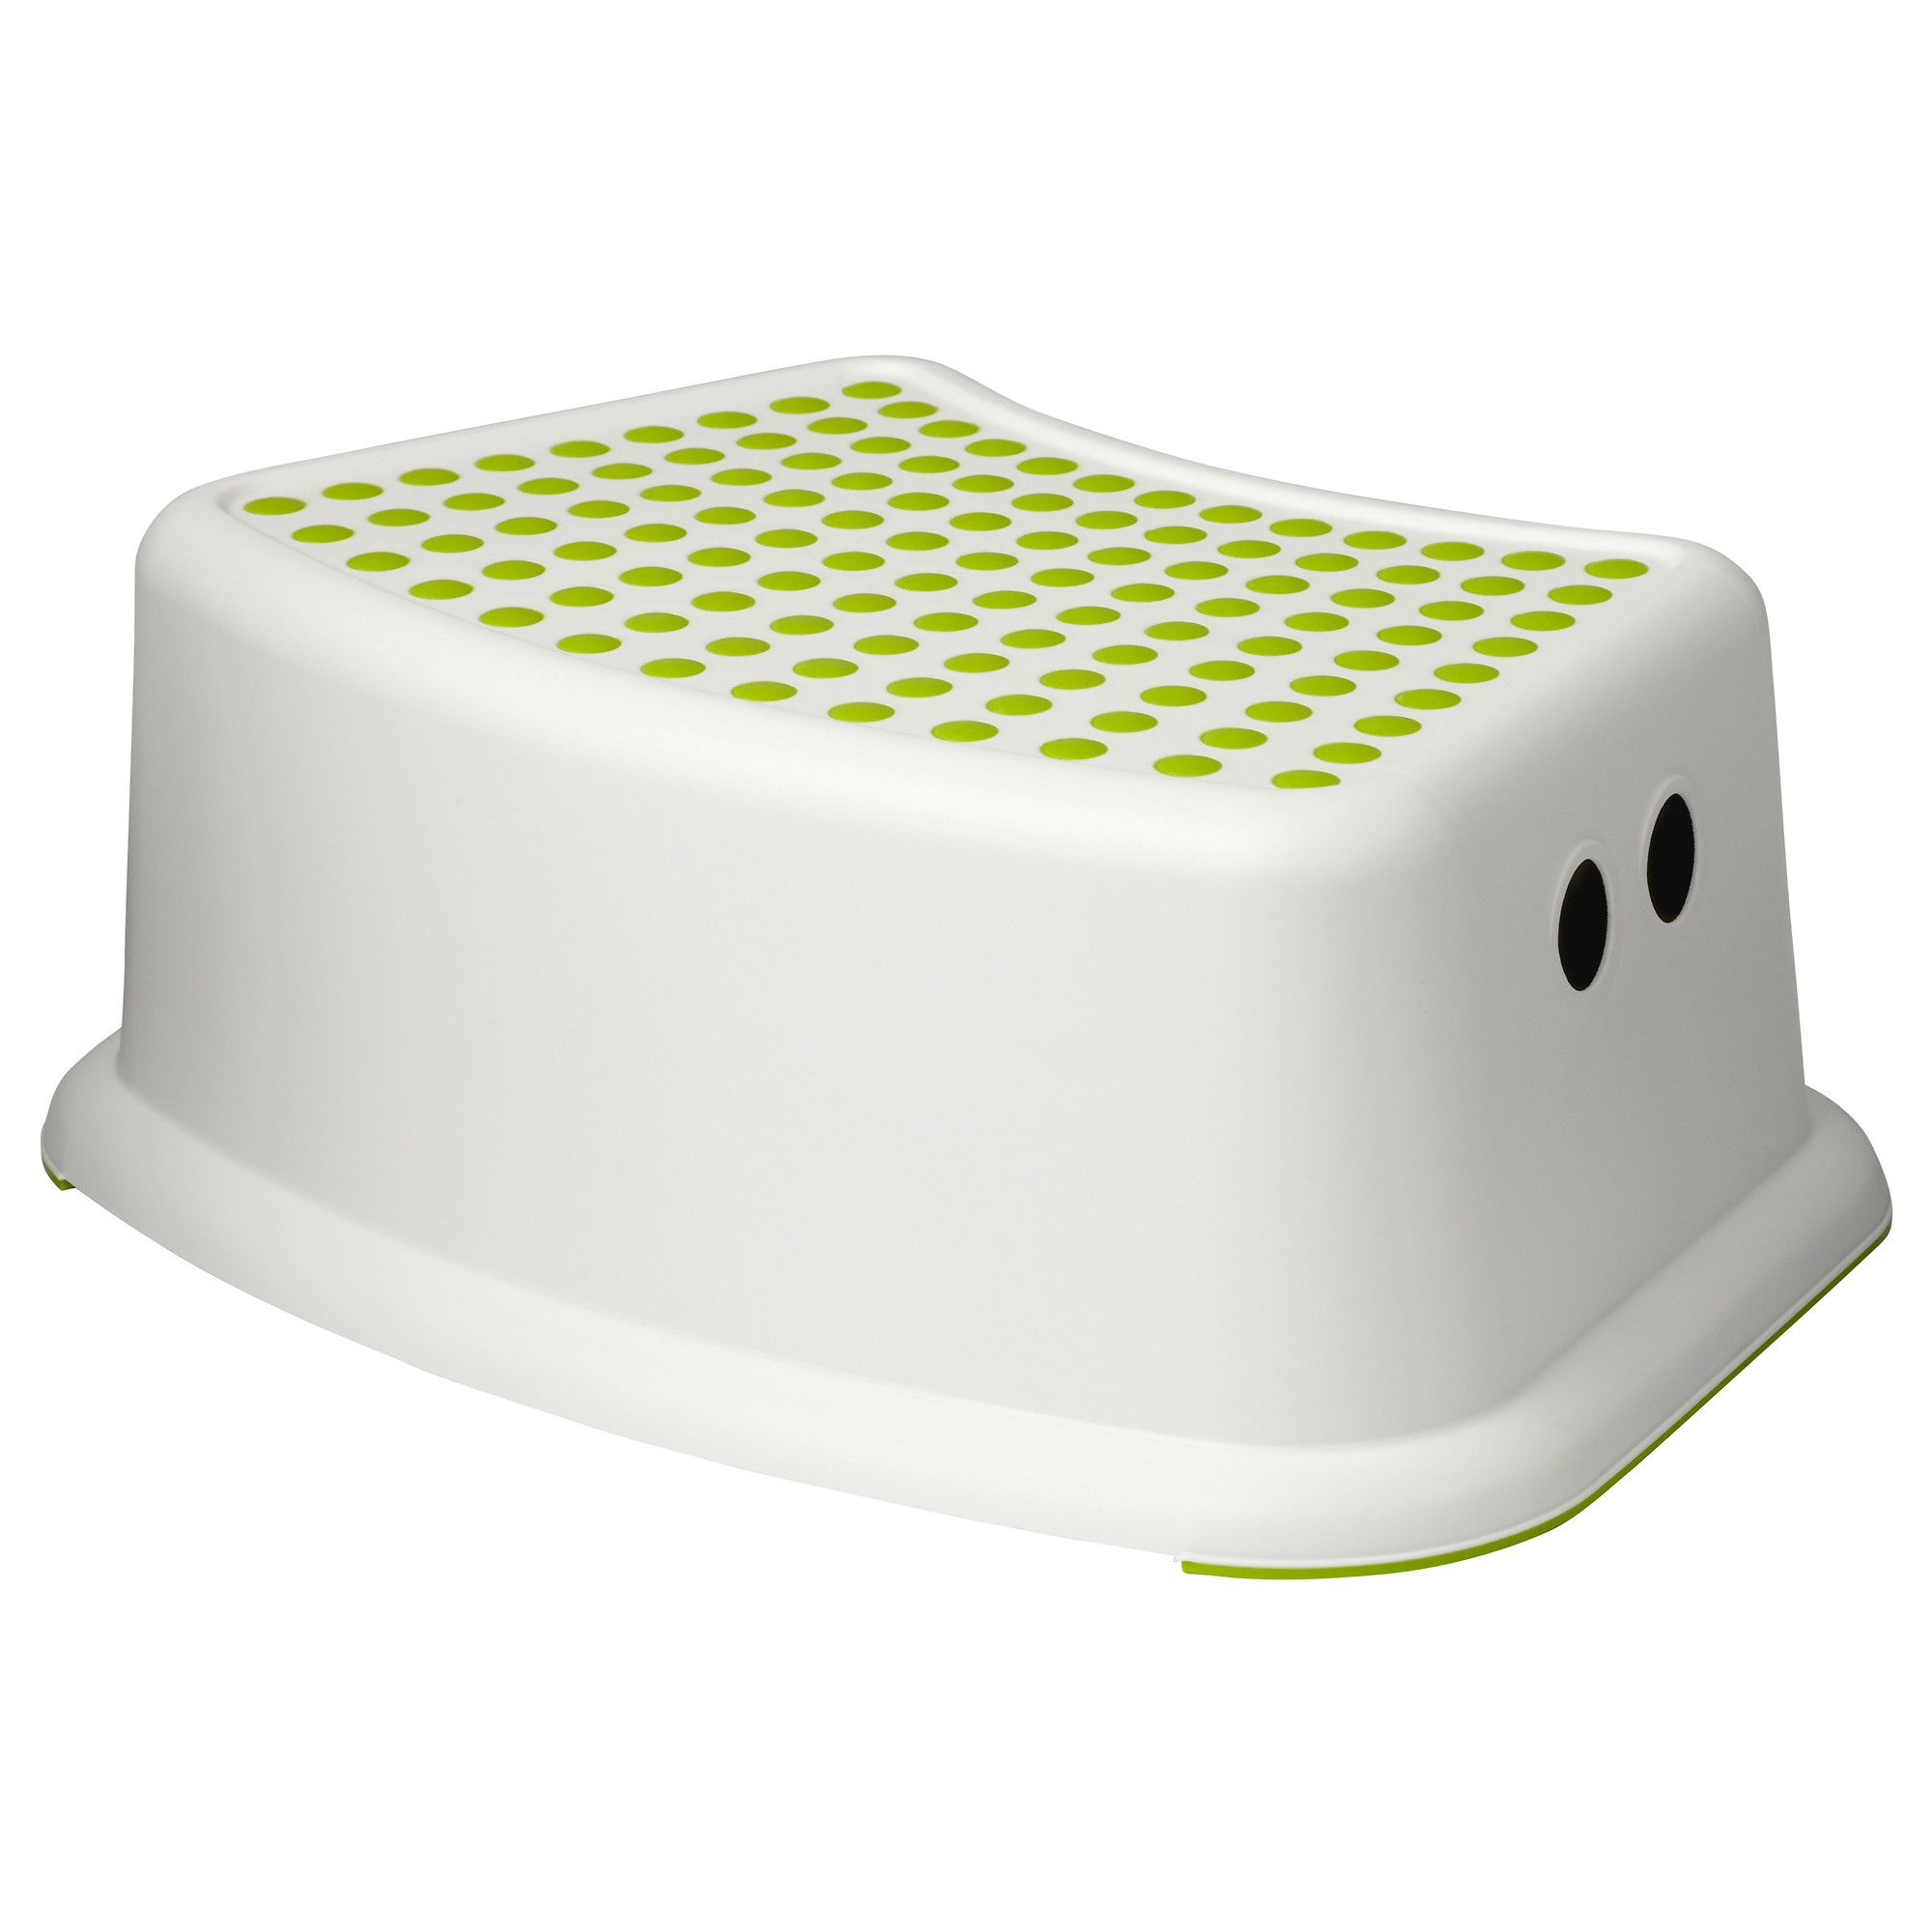 F 214 Rsiktig Children S Stool White Green Guest Bathroom